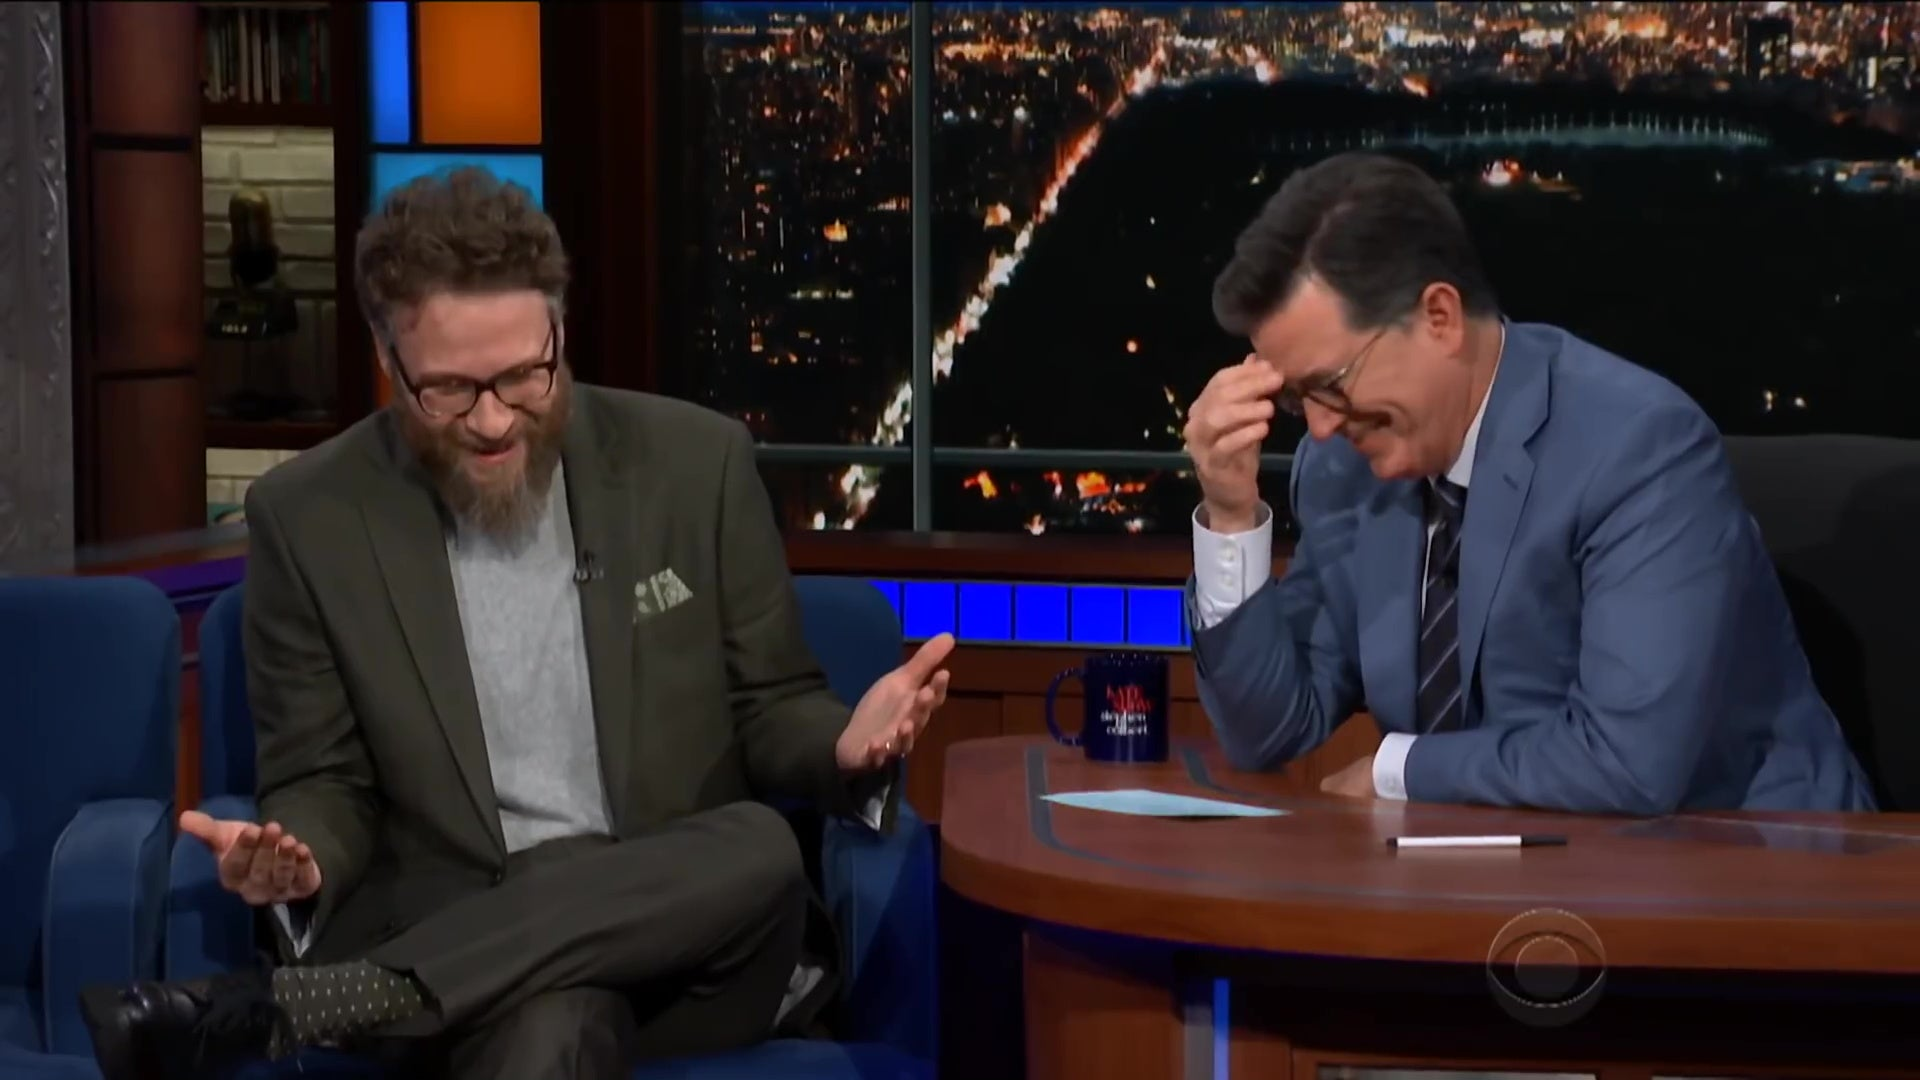 Seth Rogen talking to Stephen Colbert on The Late Show.